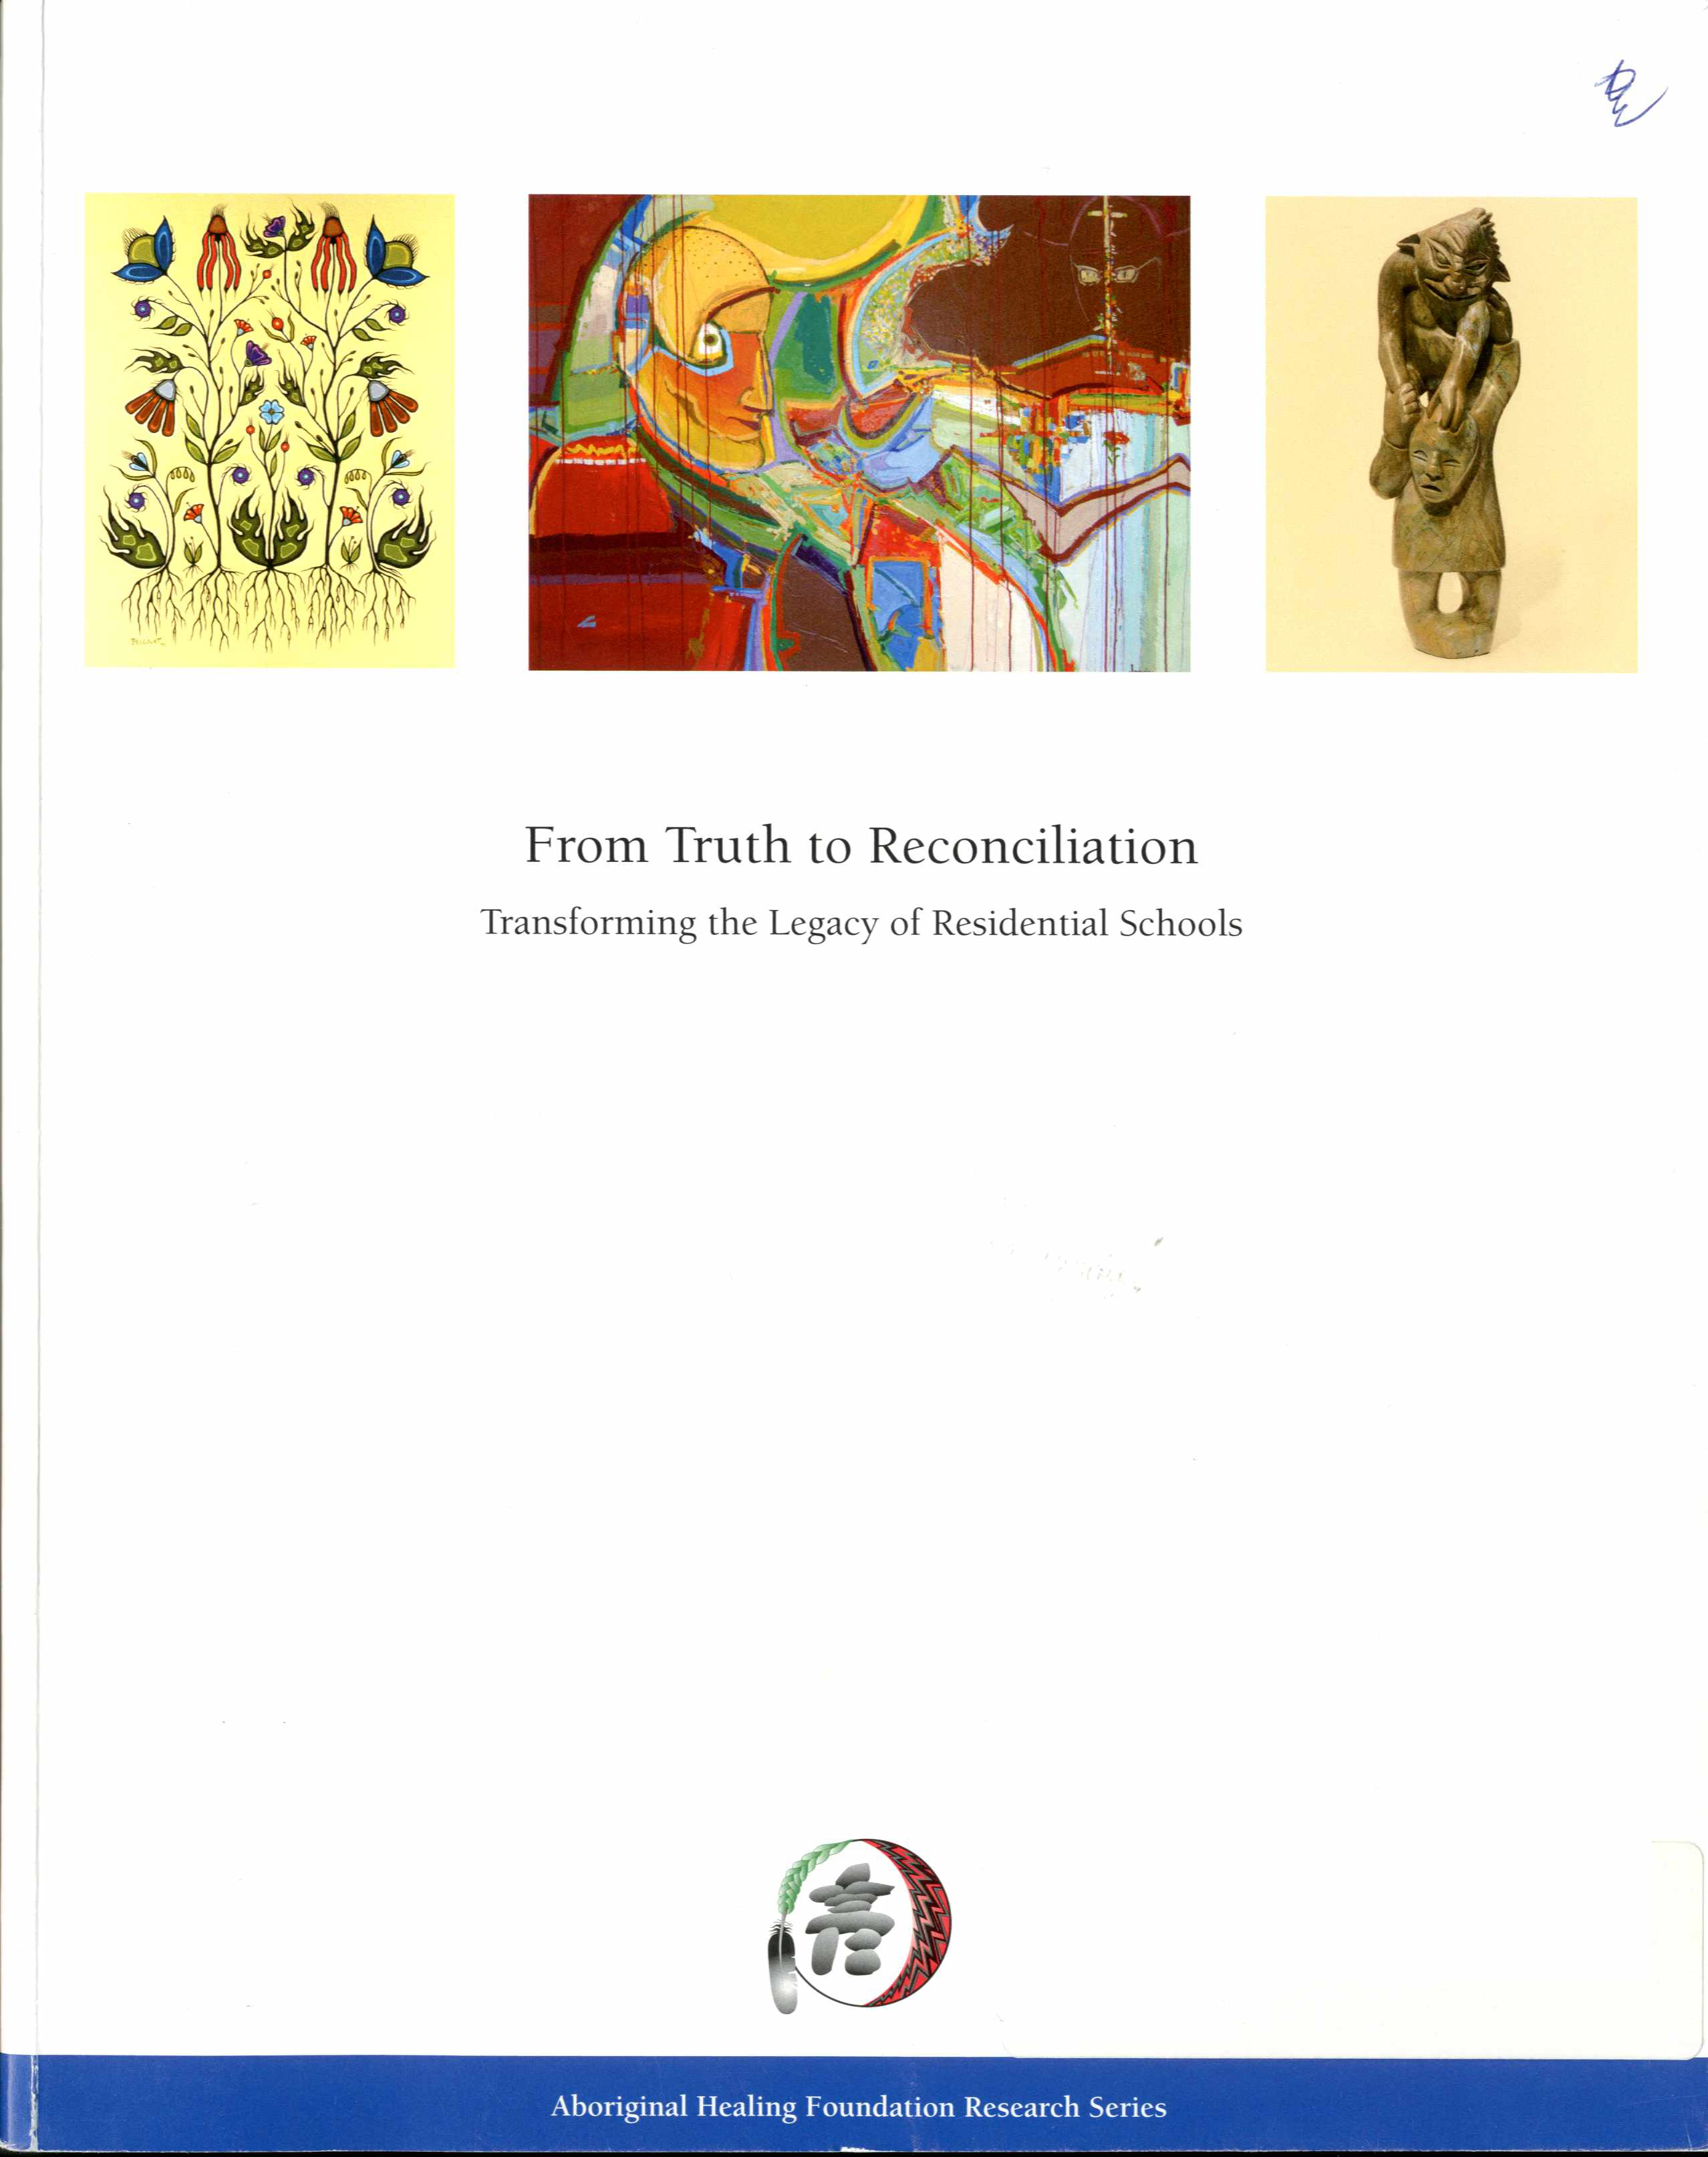 From Truth to Reconciliation: Transforming the Legacy of Residential Schools Image